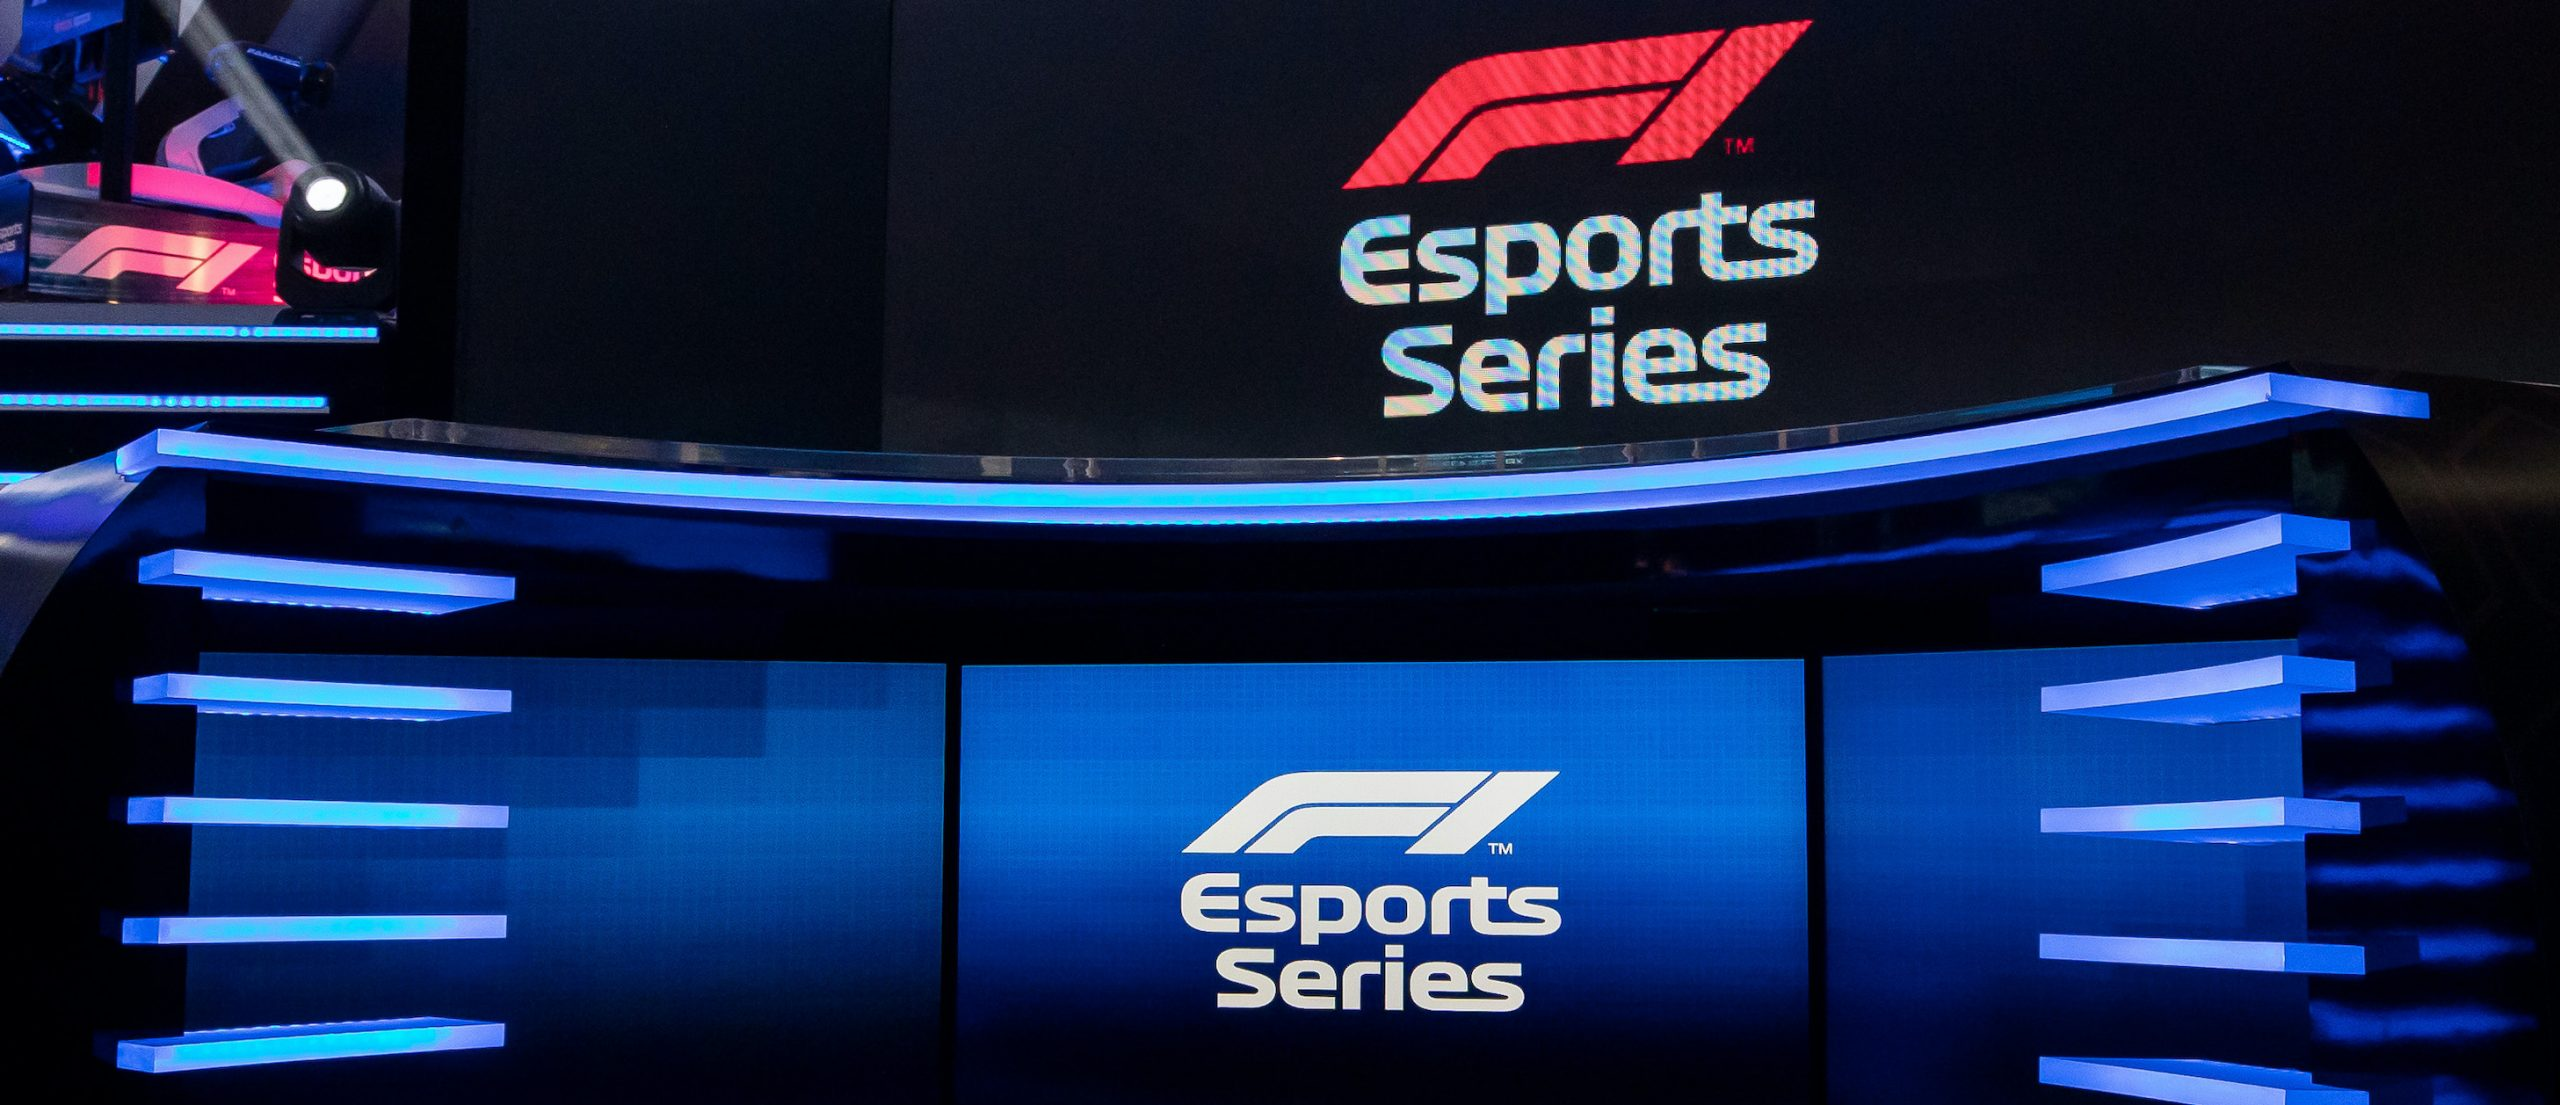 Record-Breaking Qualification Numbers Ahead of 2021 F1 Esports Series